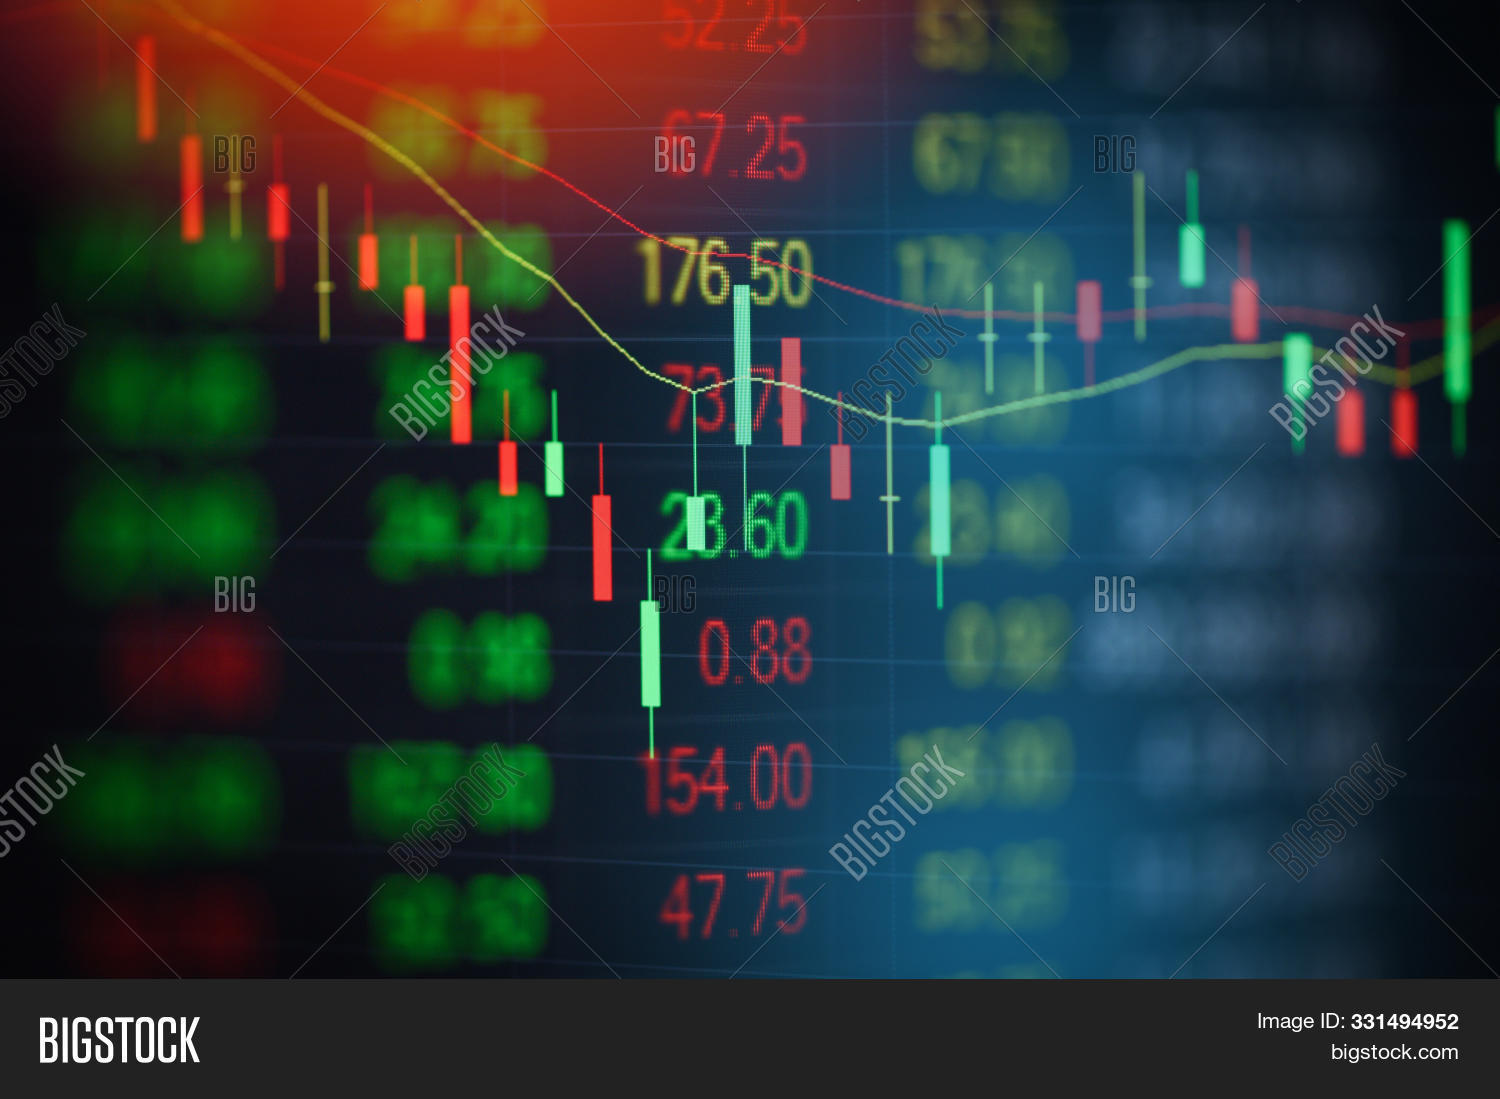 abstract,accounting,analysis,analyzing,background,bank,banking,blue,business,chart,computer,crisis,currency,data,diagram,digital,display,dollar,economic,economy,electronic,exchange,finance,financial,forex,global,graph,graphic,green,growth,index,information,investment,management,market,marketing,money,monitor,price,profit,rate,report,research,sell,statistic,stock,success,technology,trade,up